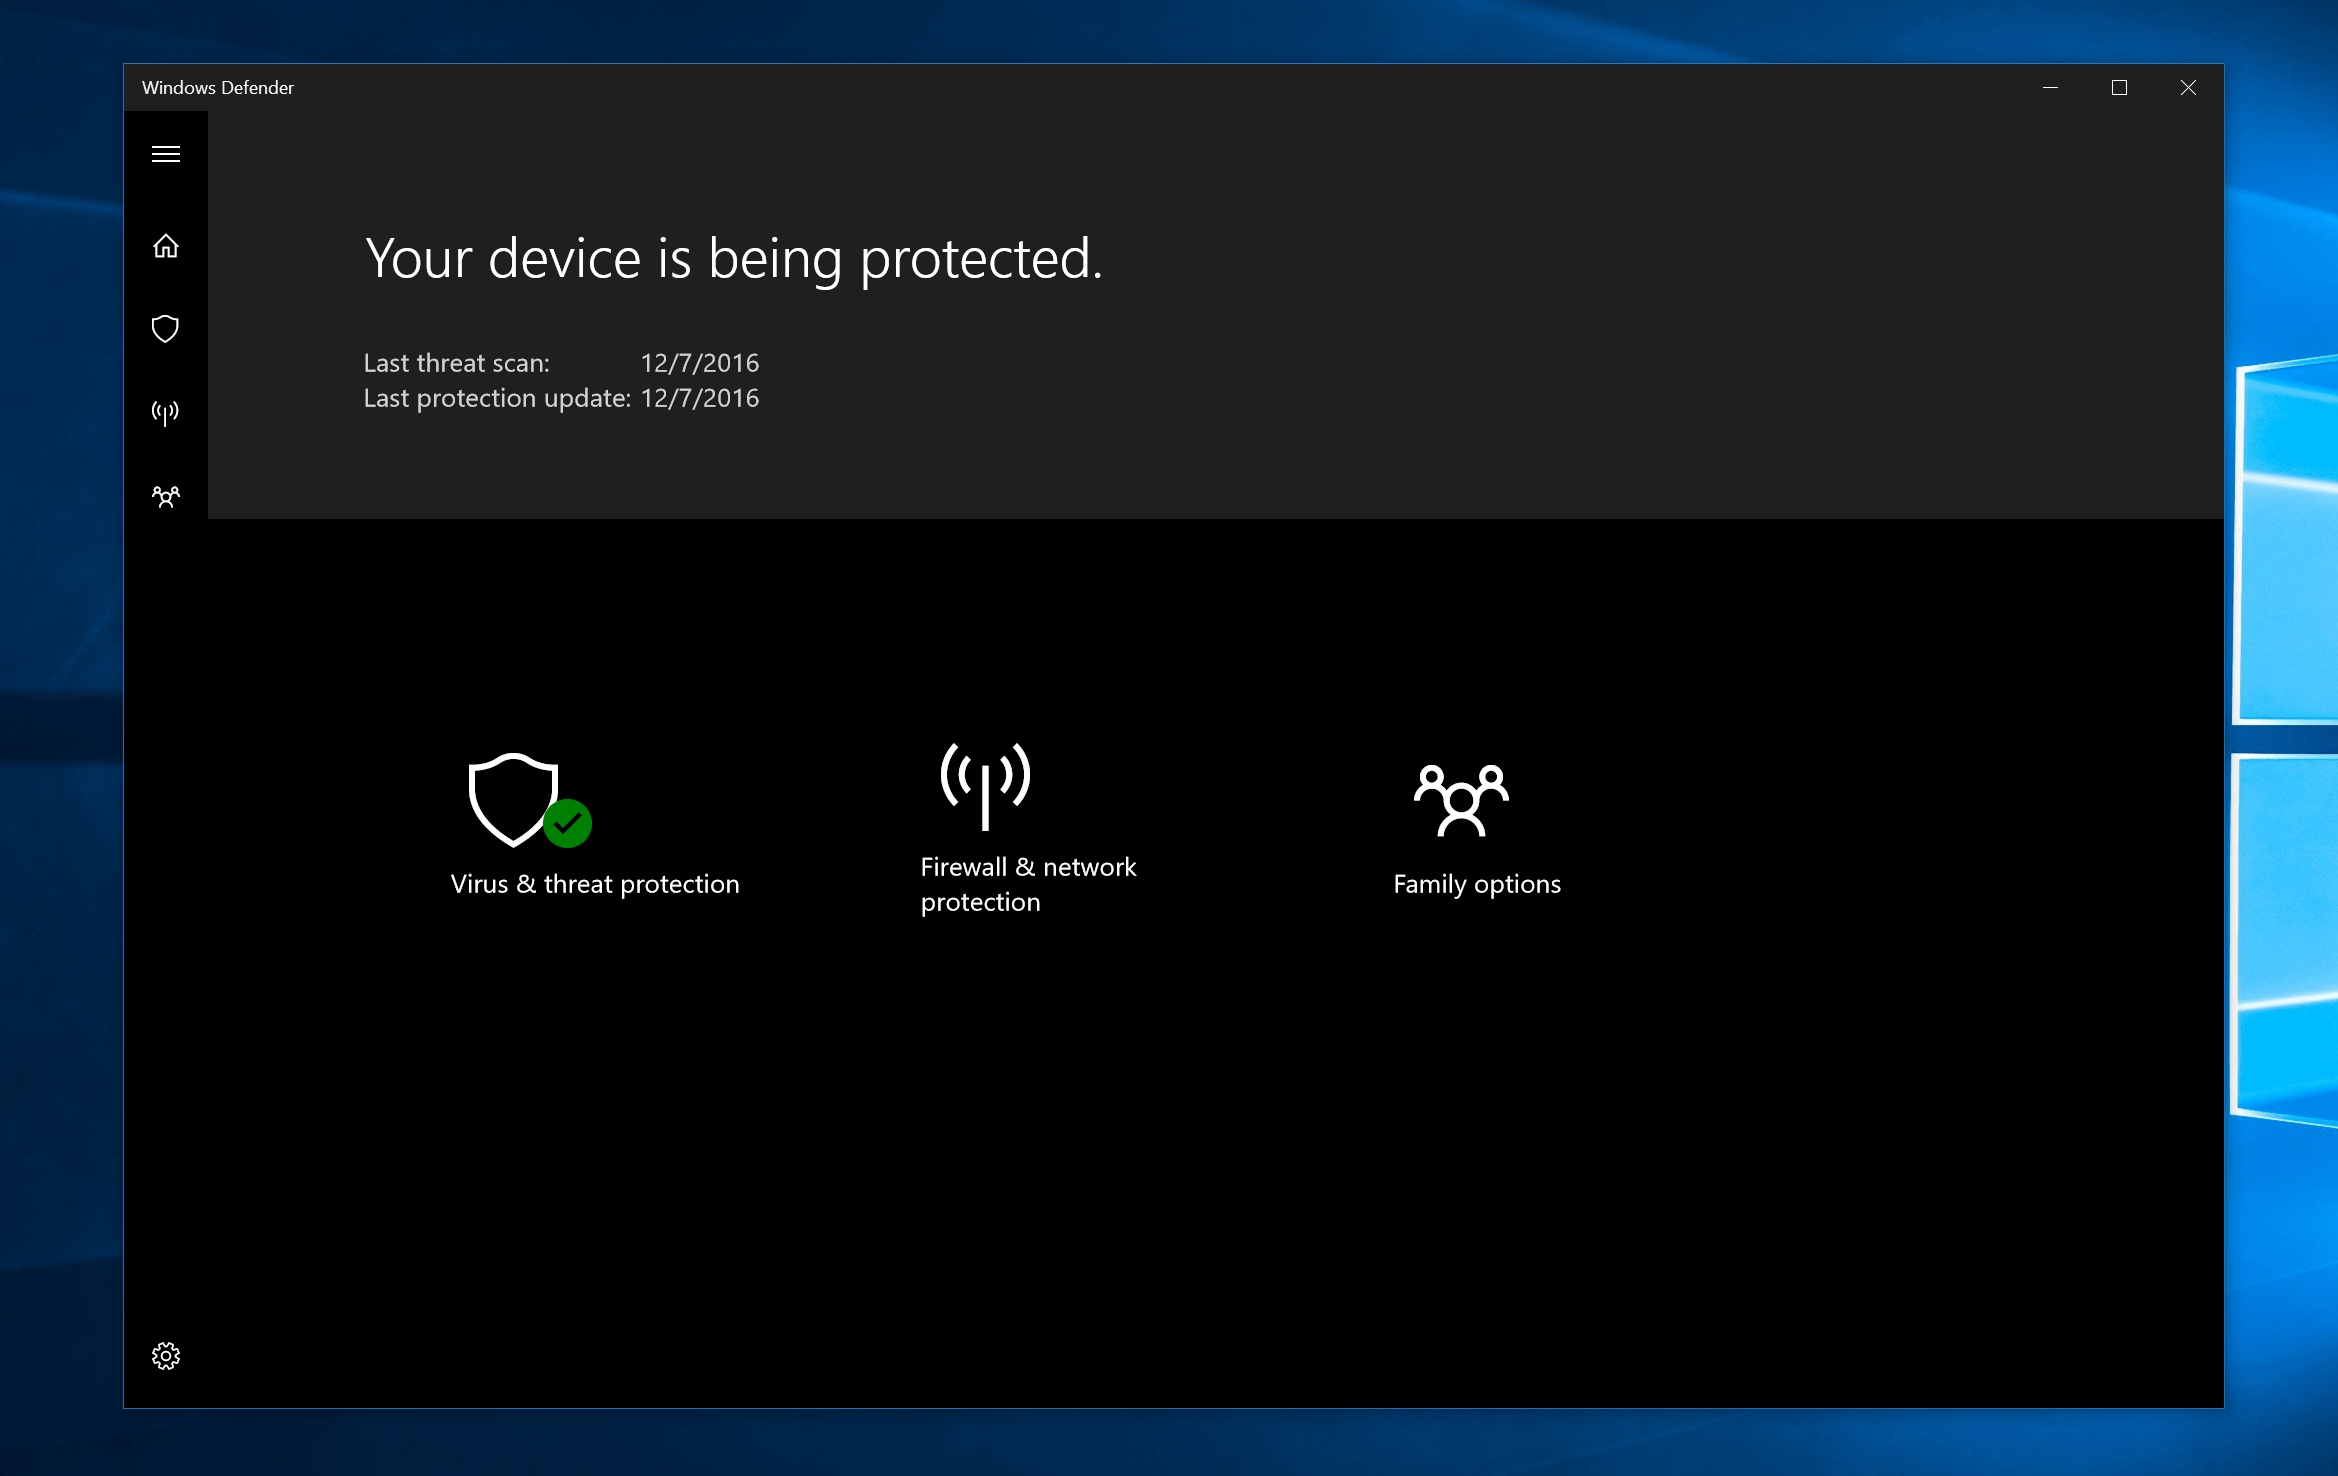 Windows defender no Windows 10